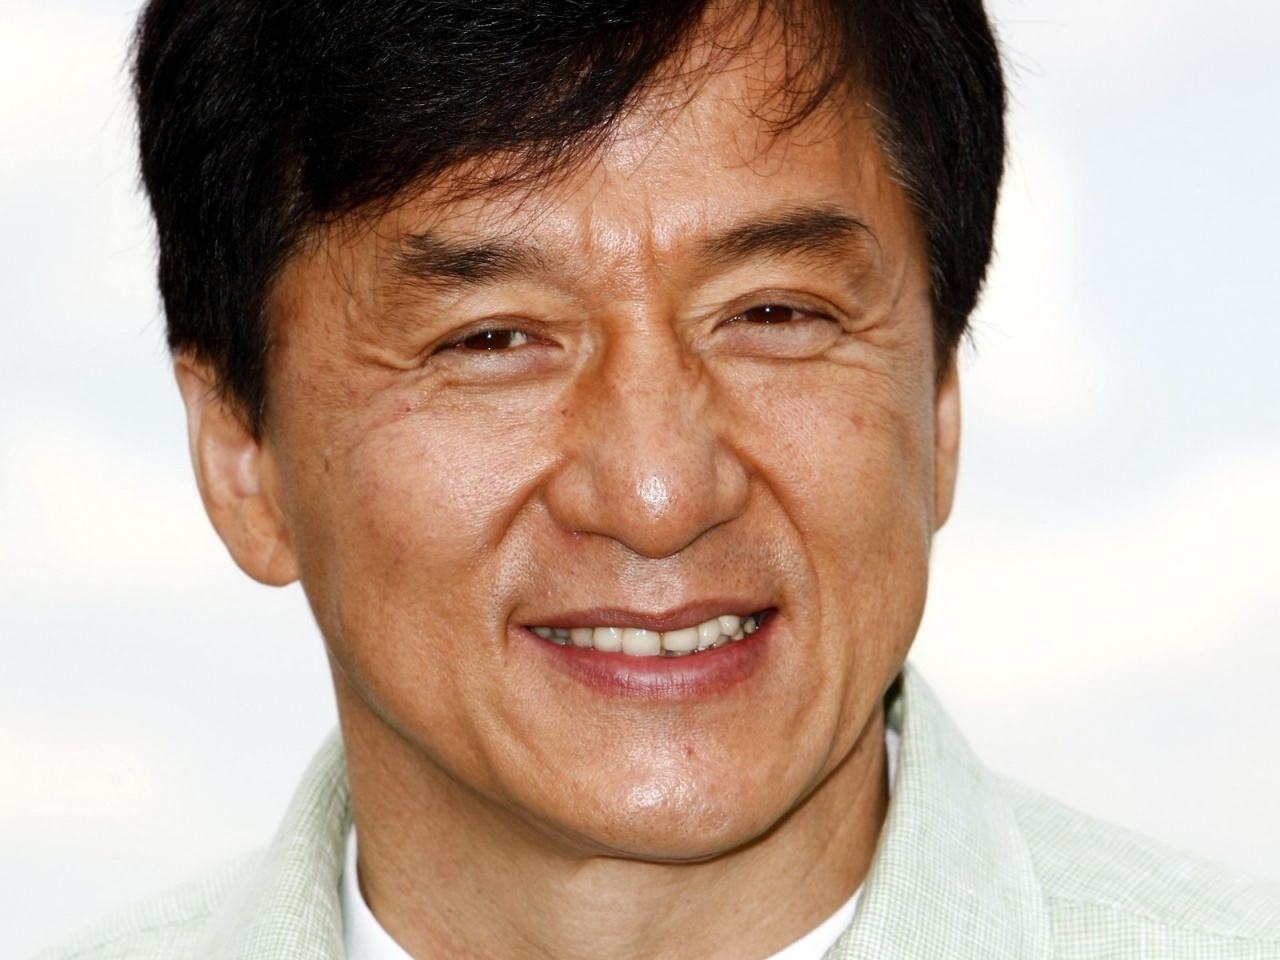 Jackie Chan on why he turned down The Expendables and Rush Hour 4